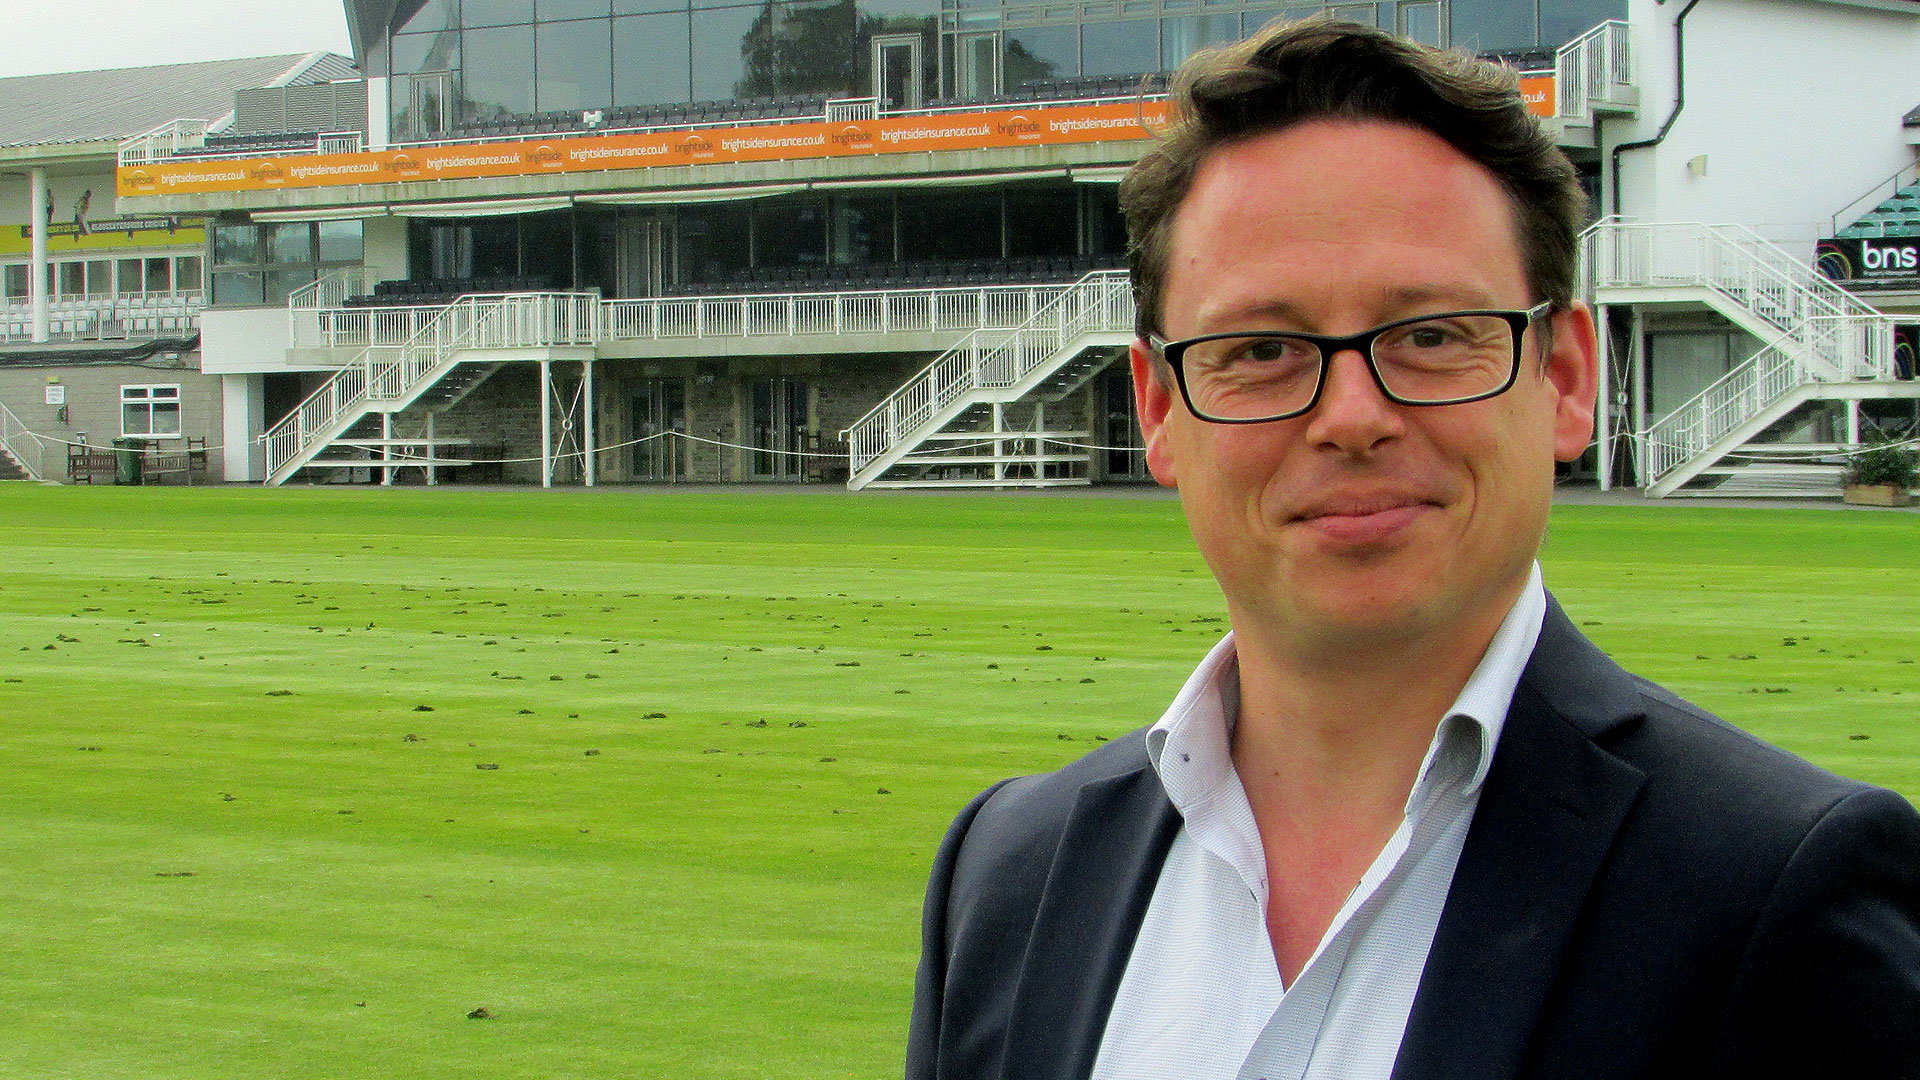 New development officer aiming to bring cricket to inner city Bristol